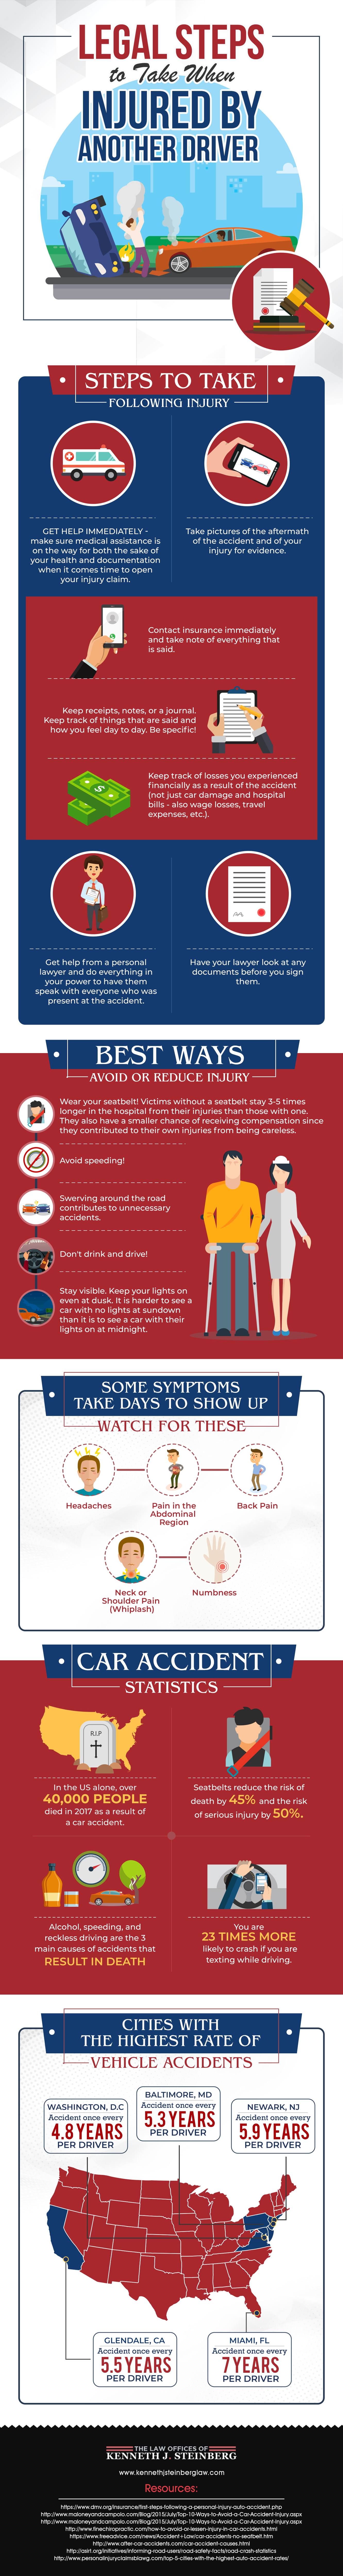 Legal Steps to Take When Injured by Another Driver